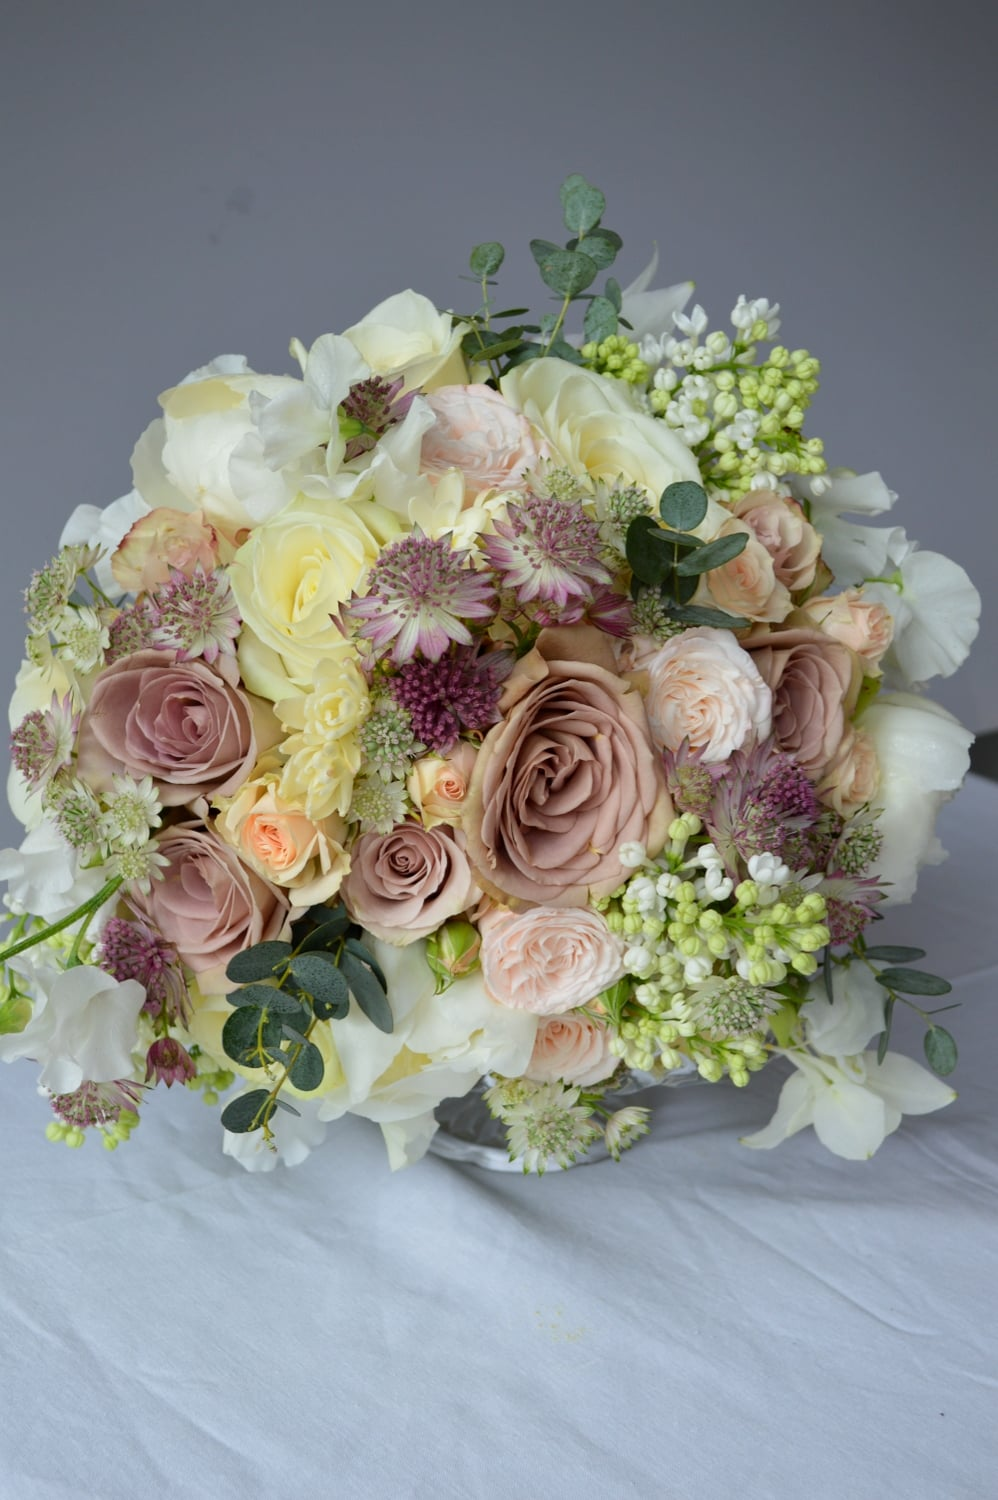 Spring bridesmaids bouquet in white & lilac with peonies, roses and sweet peas